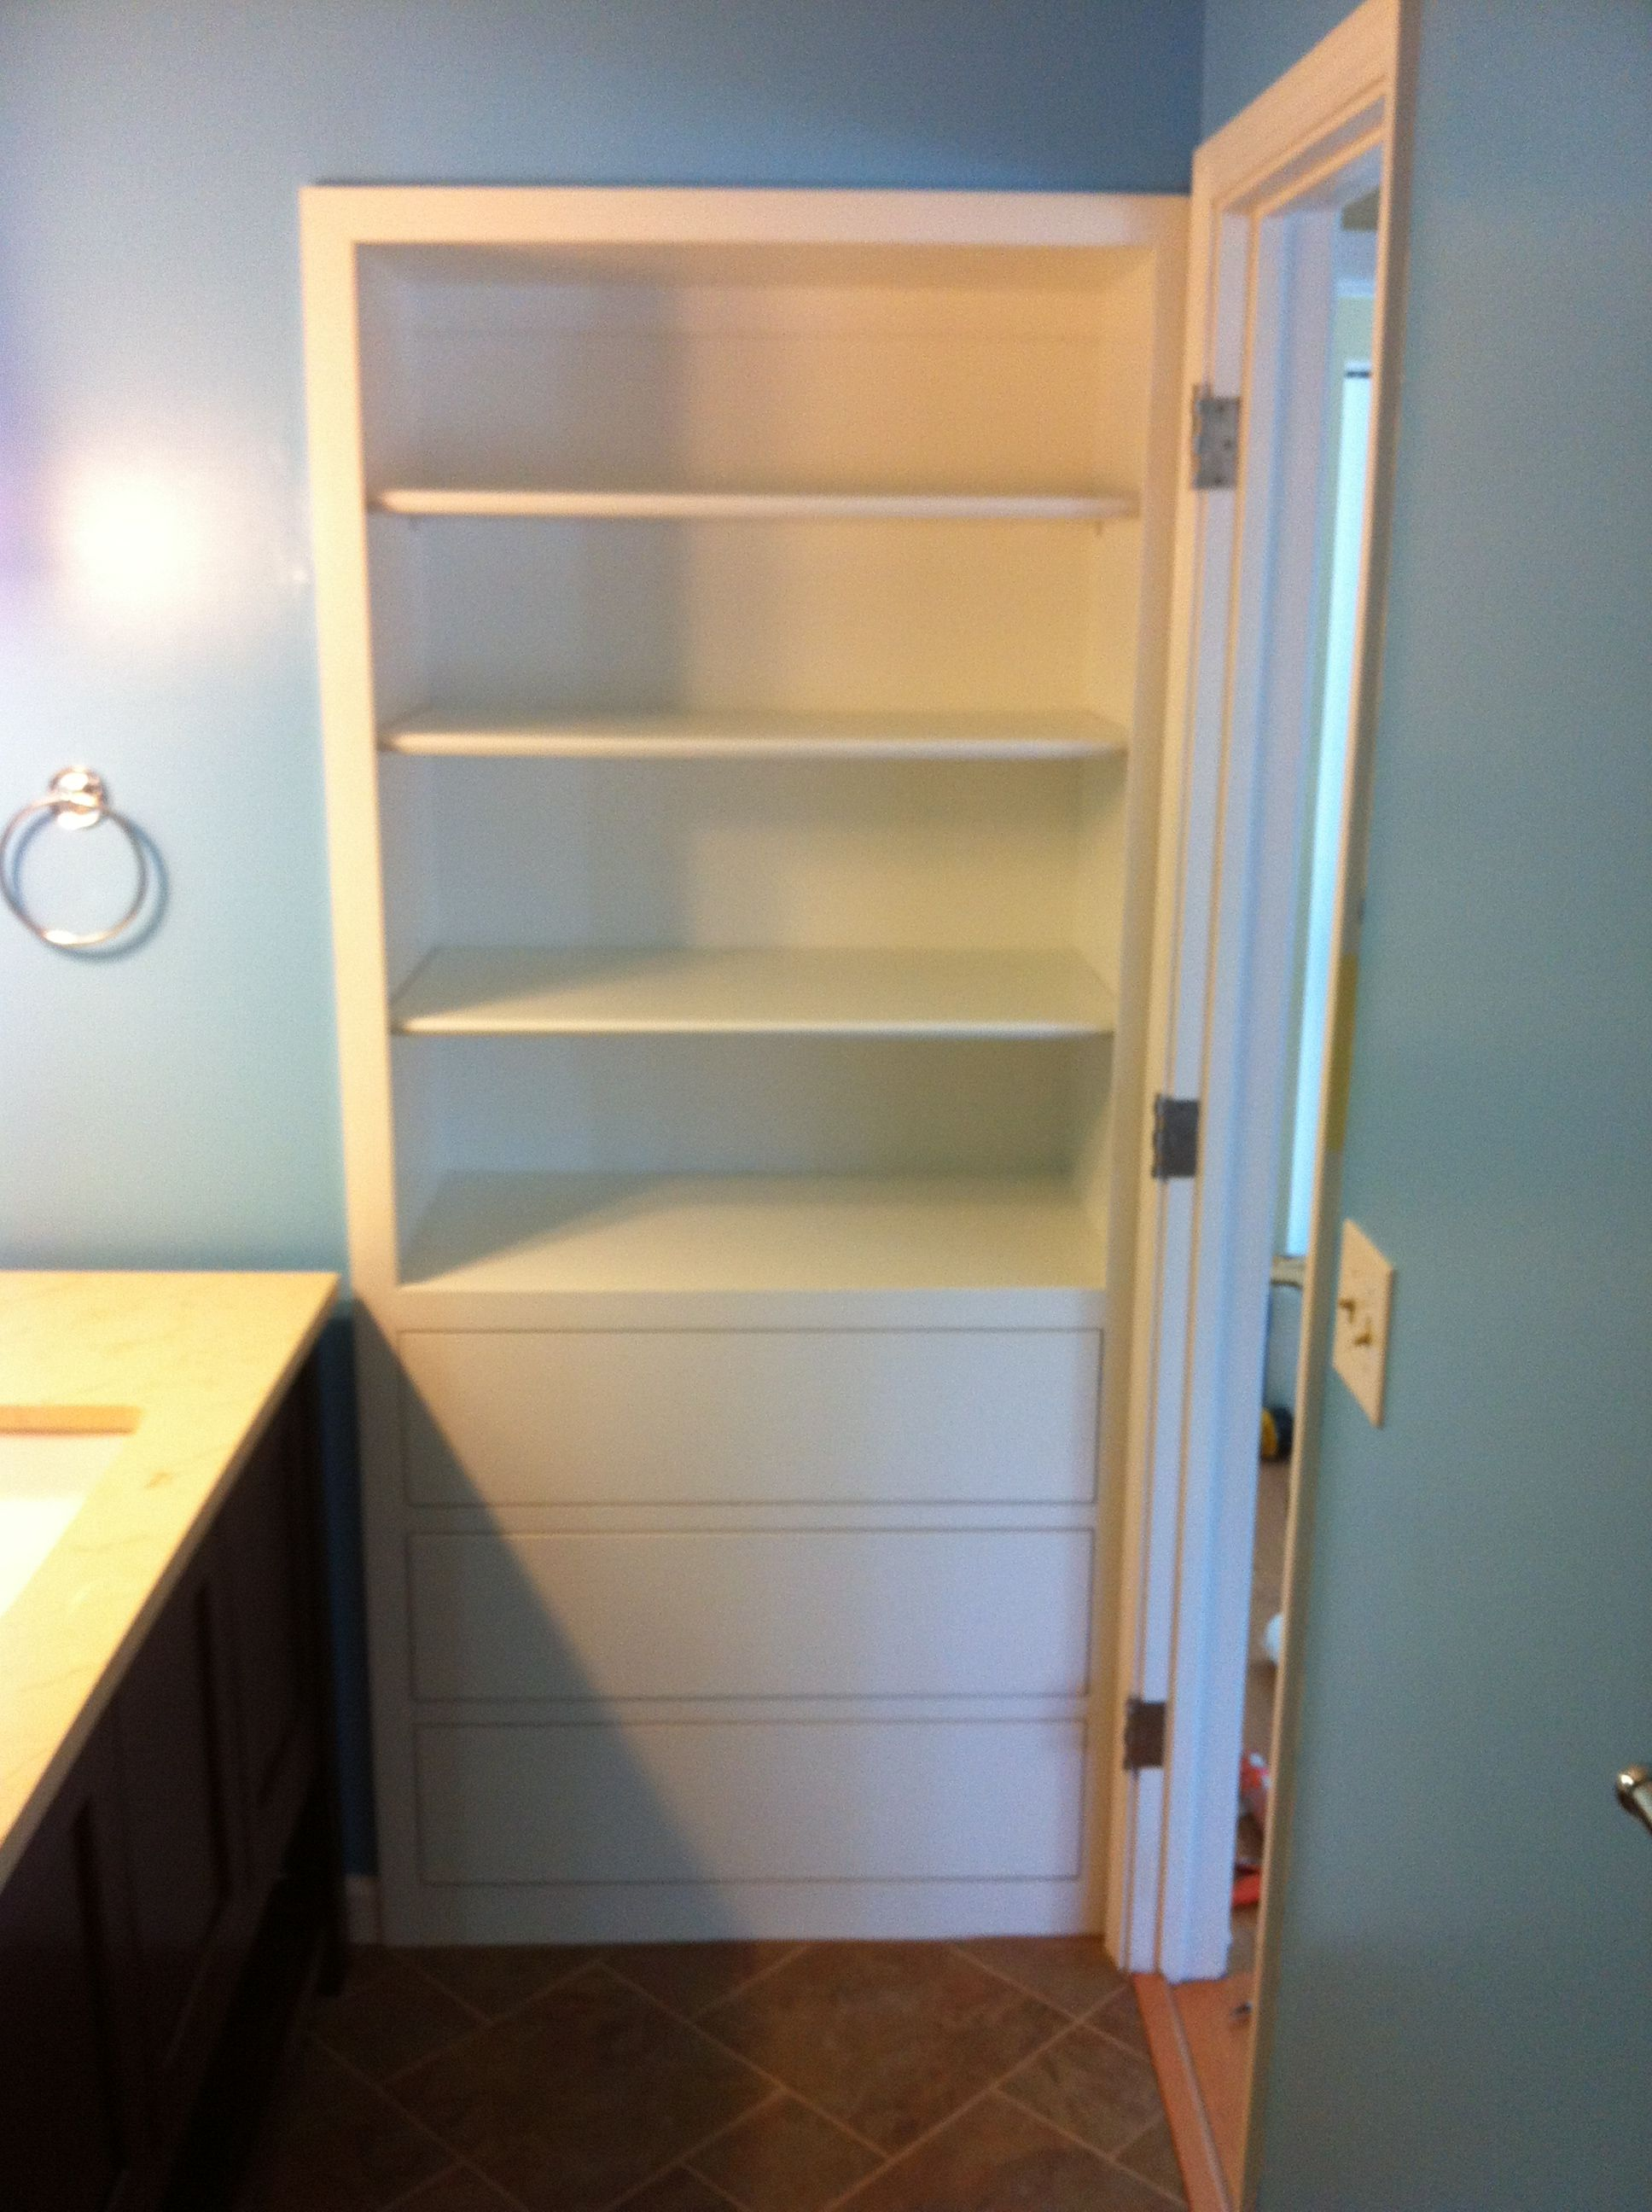 Recessed Bathroom Storage Cabinet recessed bathroom storage cabinet - google search | ect | pinterest